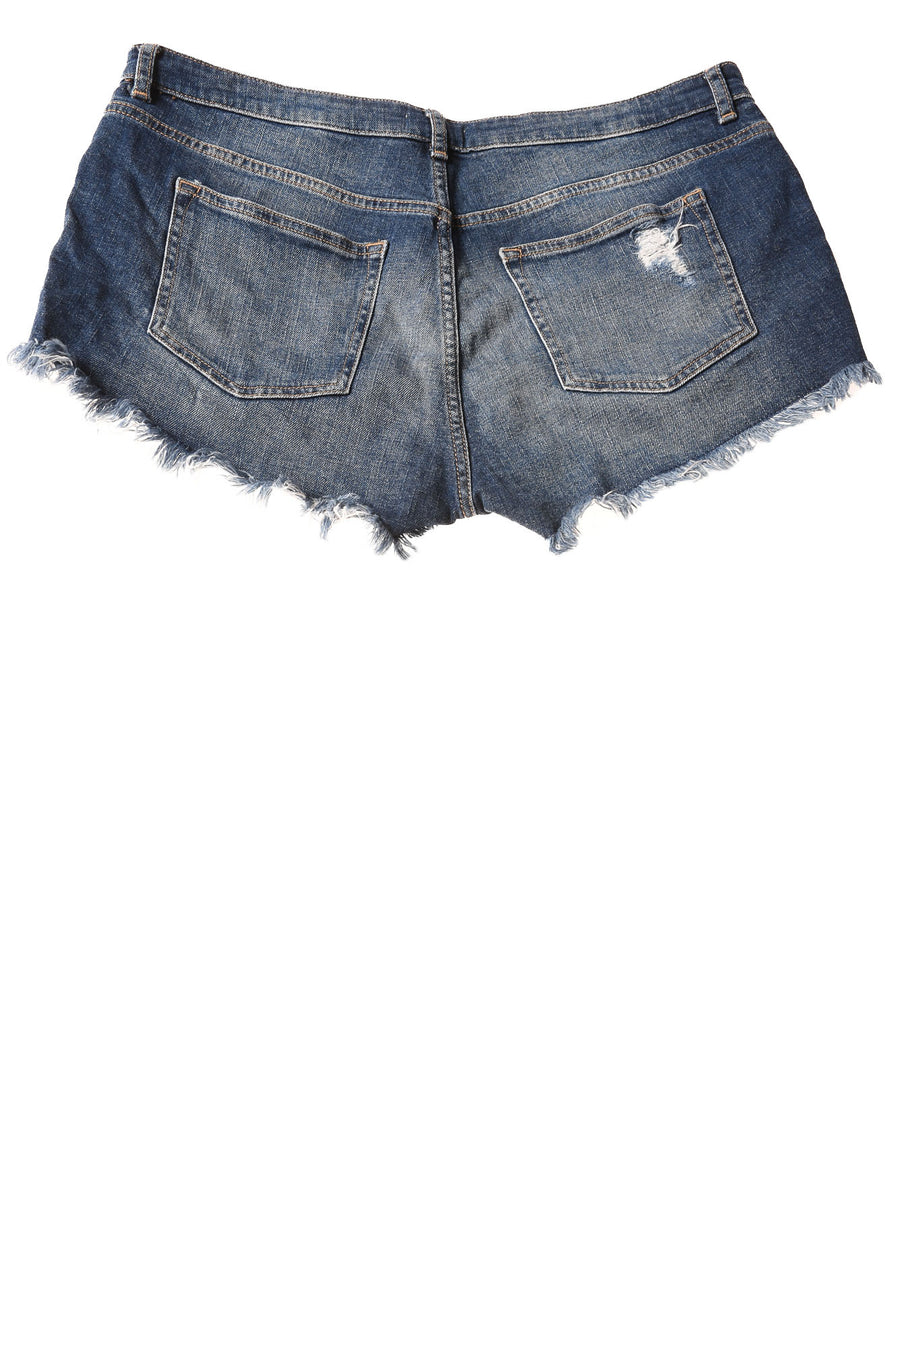 USED H&M Women's Denim Shorts 12 Blue